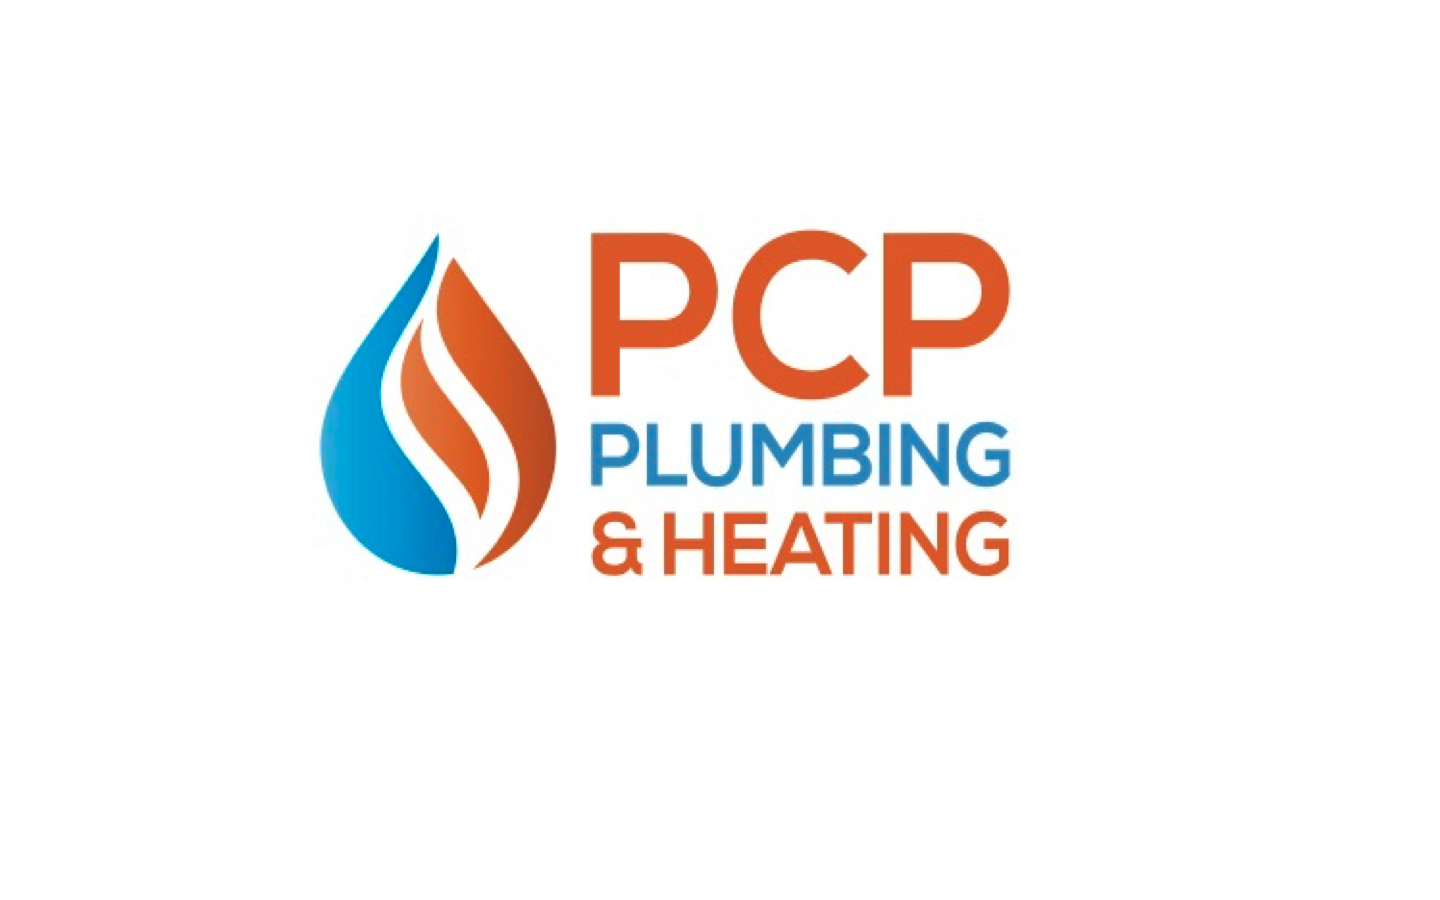 Pcp Plumbing & Heating ltd Verified Logo